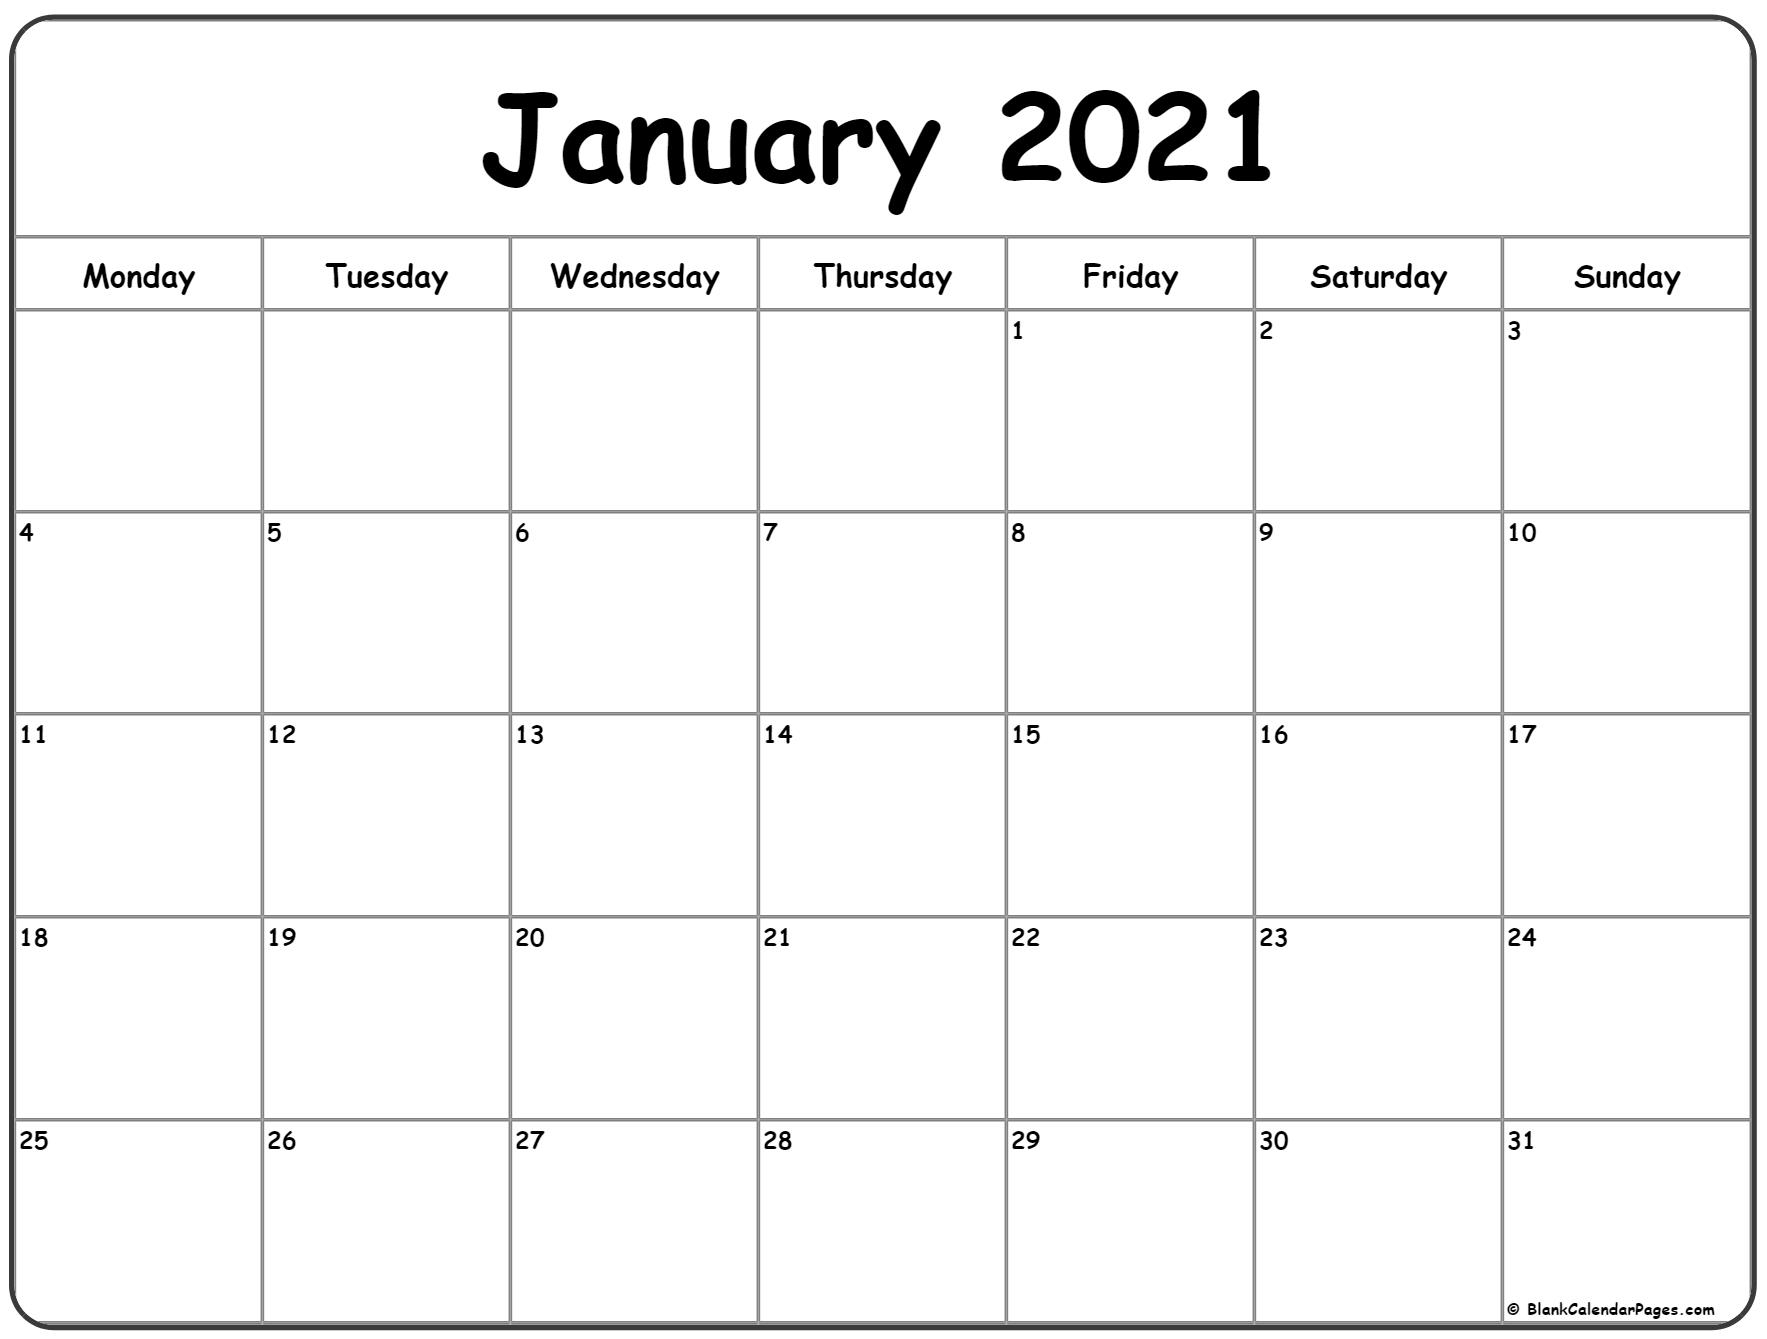 January 2021 Monday Calendar | Monday To Sunday intended for Monday Through Friday Blank Calendar